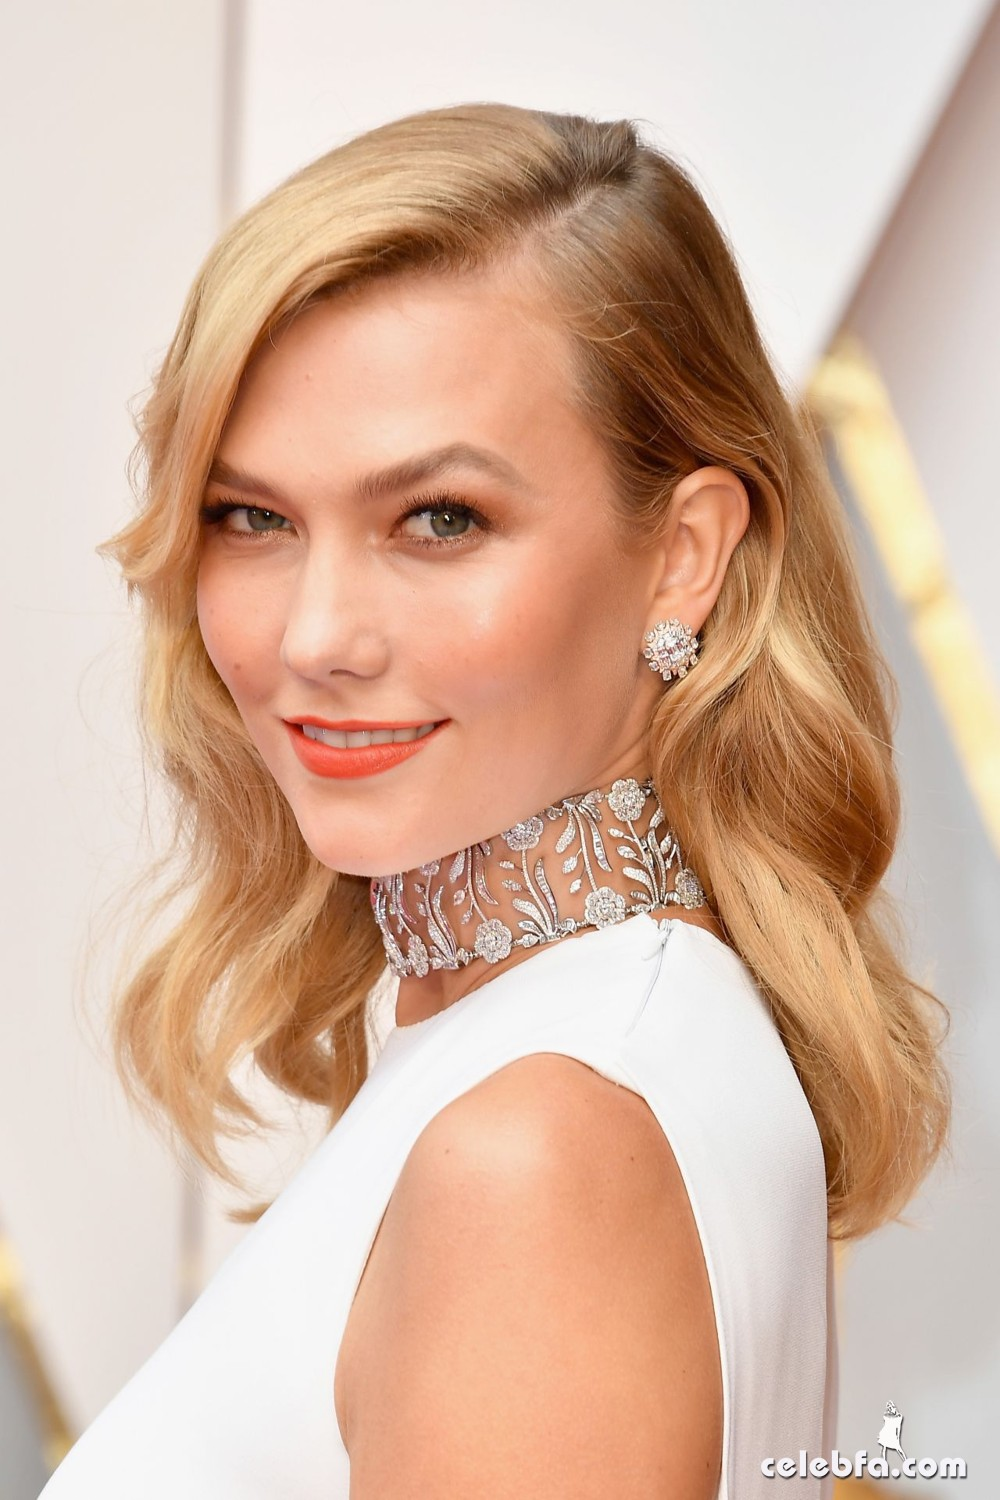 karlie-kloss-oscars-2017-red-carpet-in-hollywood-1